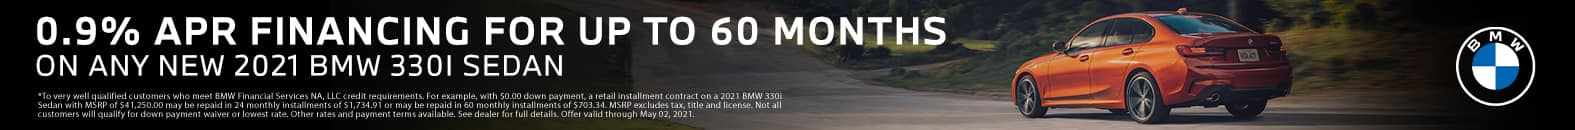 0.9% APR Financing For Up To 60 Months On Any New 2021 BMW 330i Sedan - Bert Ogden BMW in McAllen, Texas